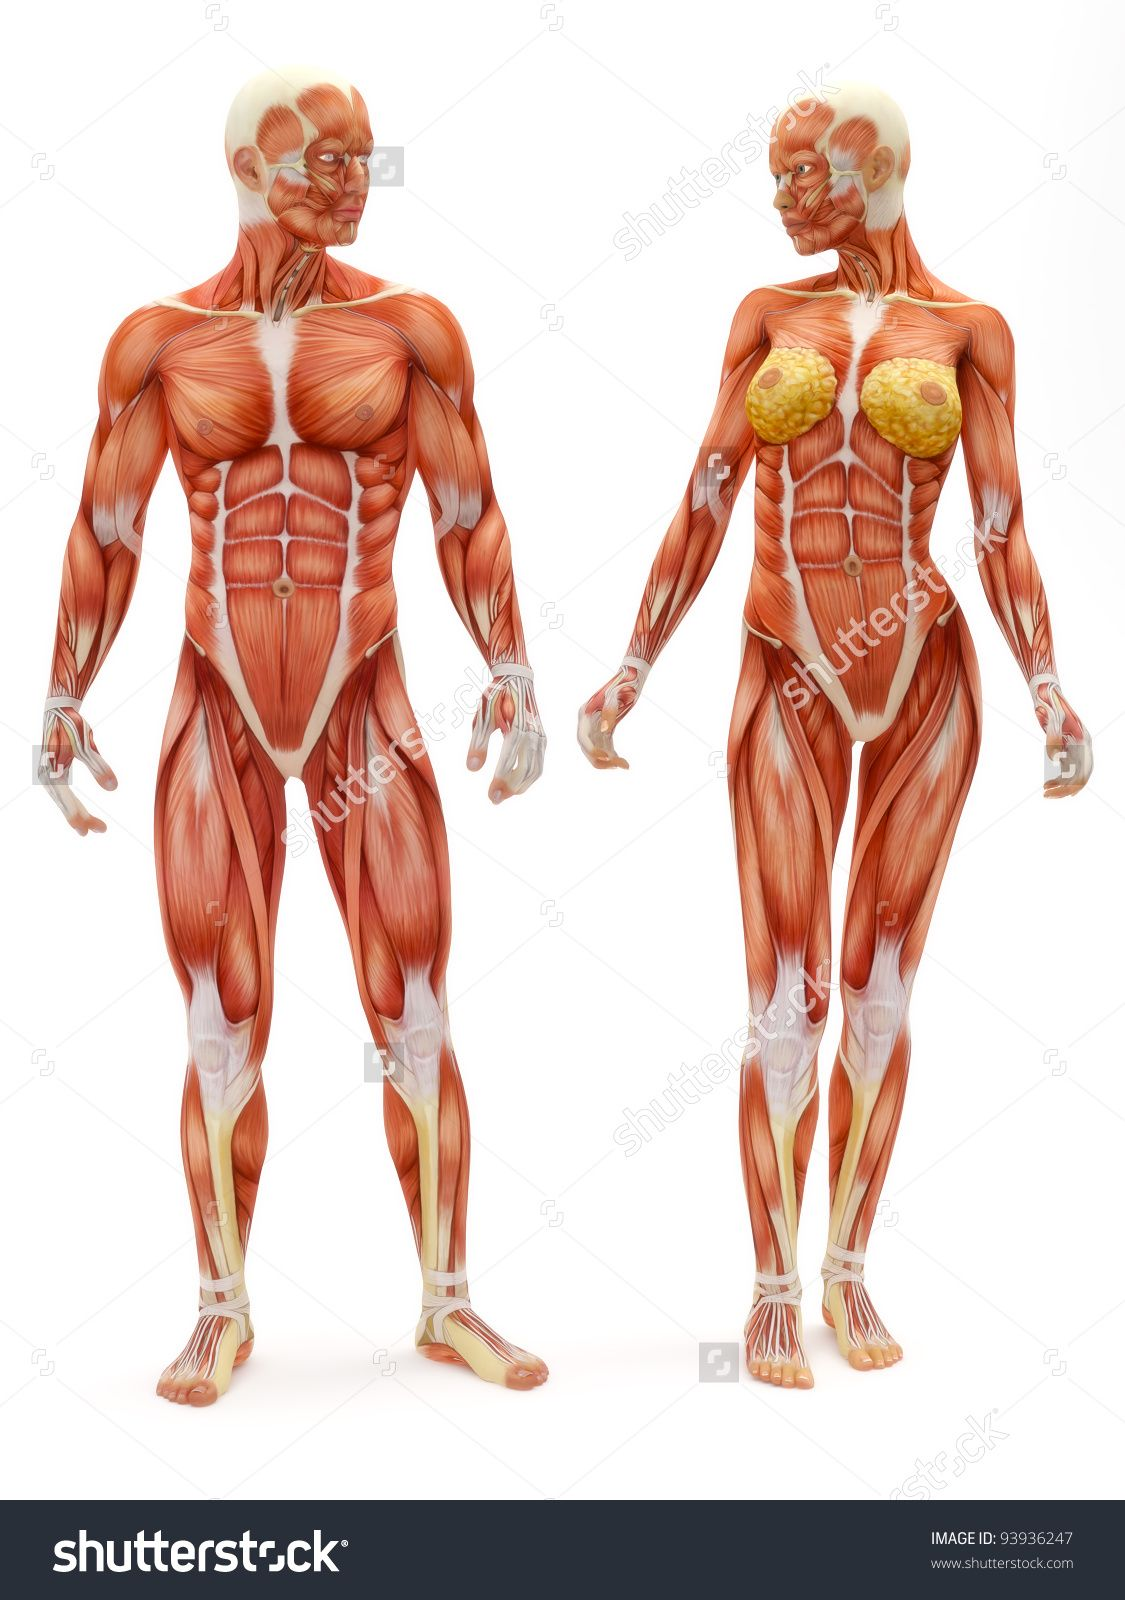 Pin By Chad Brown On Figures Pinterest Anatomy Anatomy